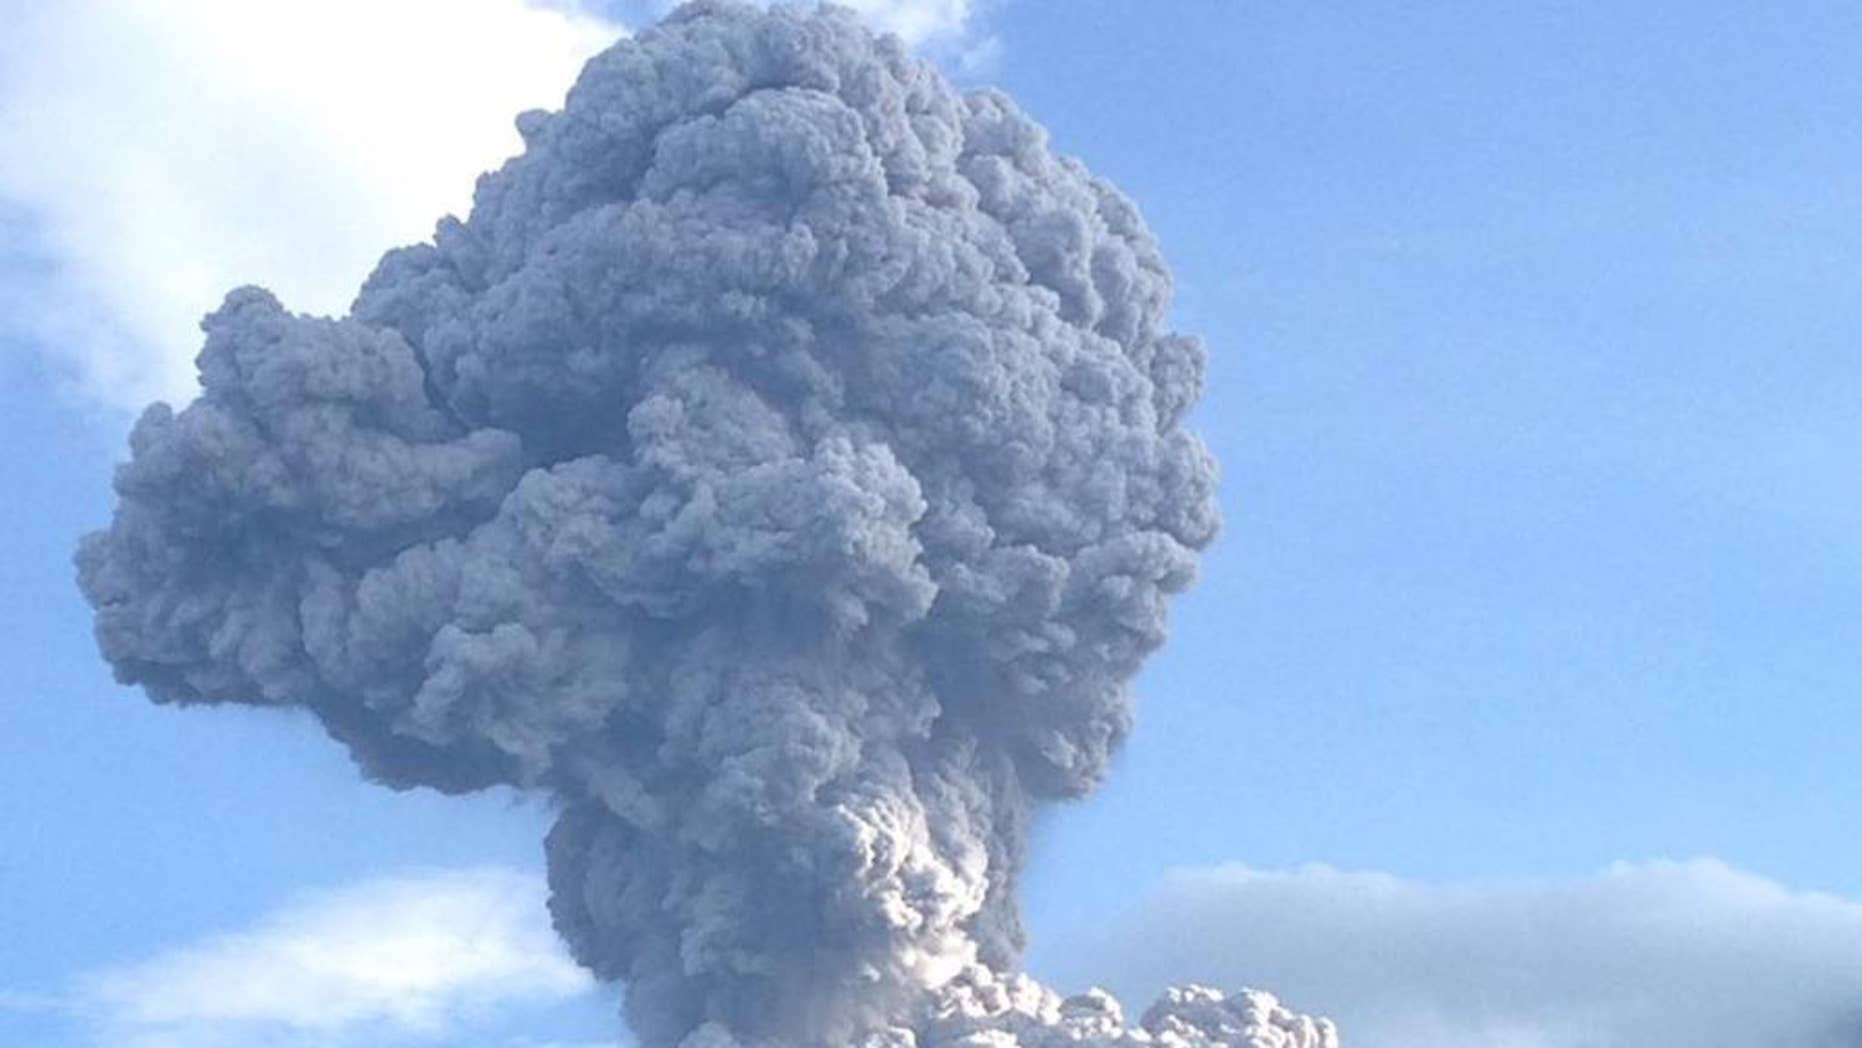 In this photo released by Guatemala's National Seismological Institute, the Santiaguito volcano blows outs a thick cloud of ash in Quetzaltenango, Guatemala, Tuesday, Aug. 16, 2016. Disaster response agency spokesman David De Leon said the ash fell as far away as Mexico's southern state of Chiapas. De Leon said the volcano is one of the most explosive in Latin America, with about 76 eruptions this year. (Guatemala's National Seismological Institute via AP)